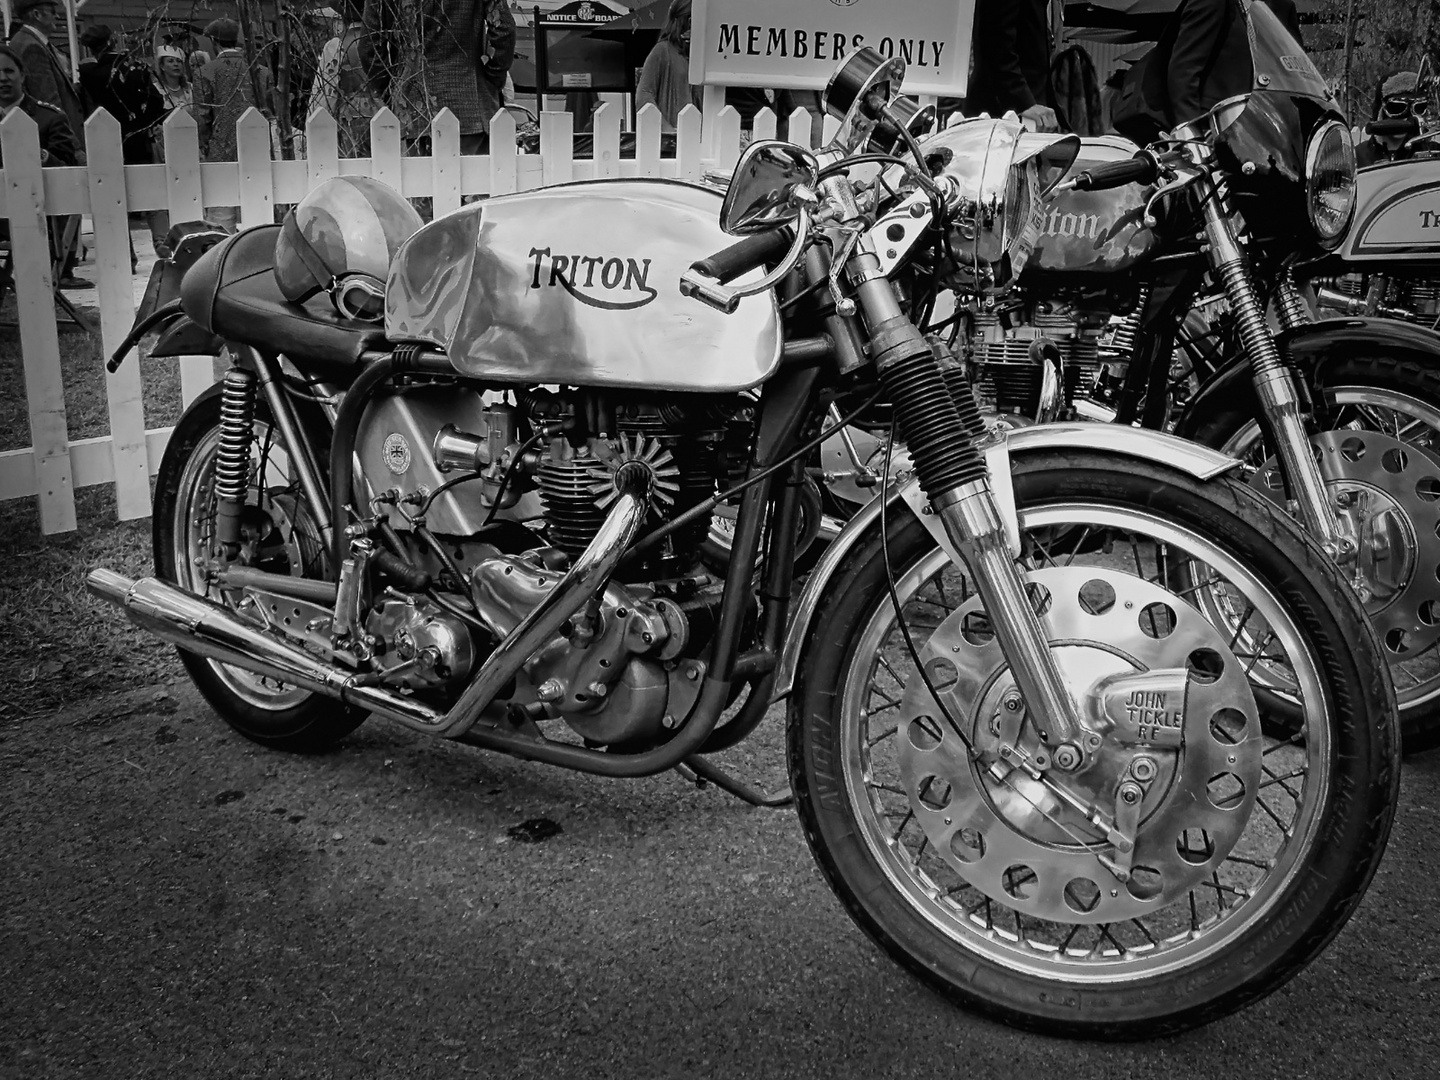 Triton Cafe Racer Motorcycle - Goodwood